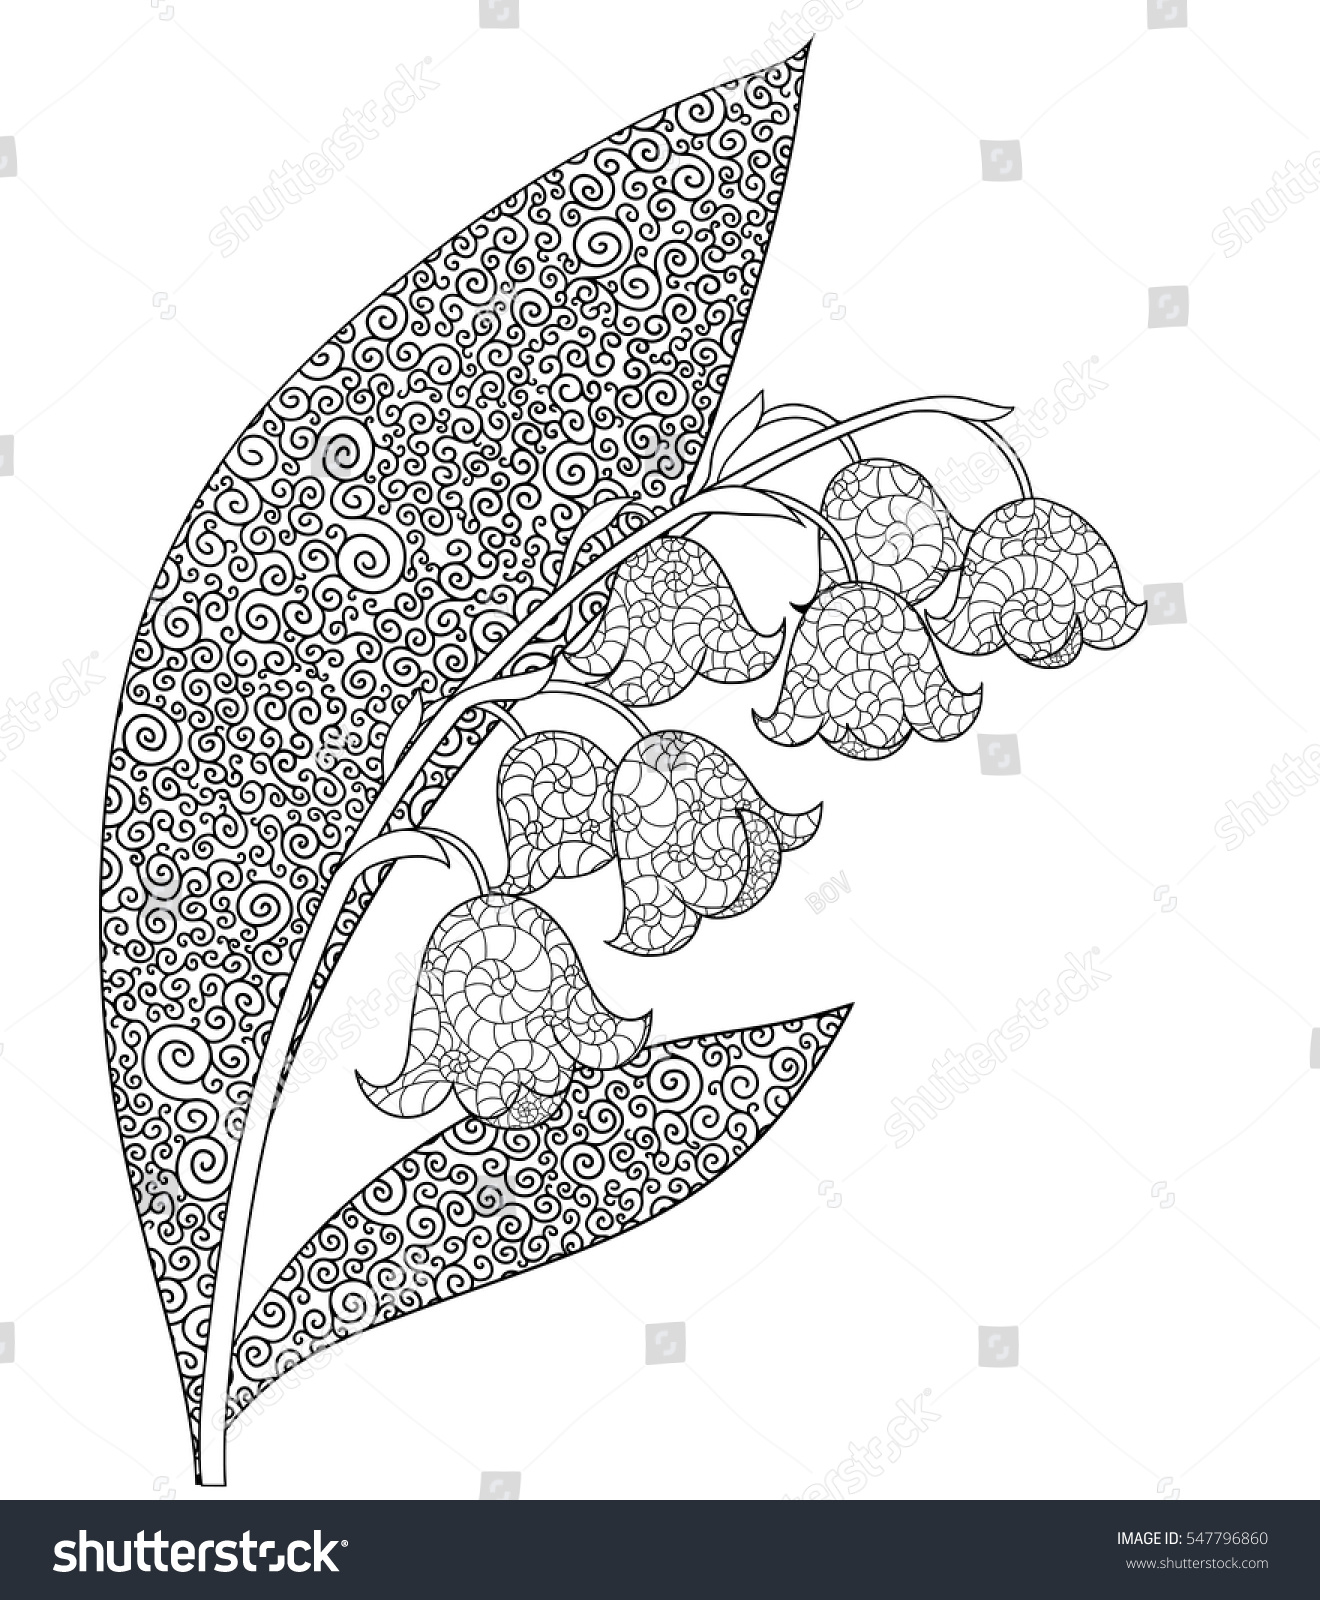 Lily Of The Valley With Leaves Spring Flower Doodle Page For Coloring Book